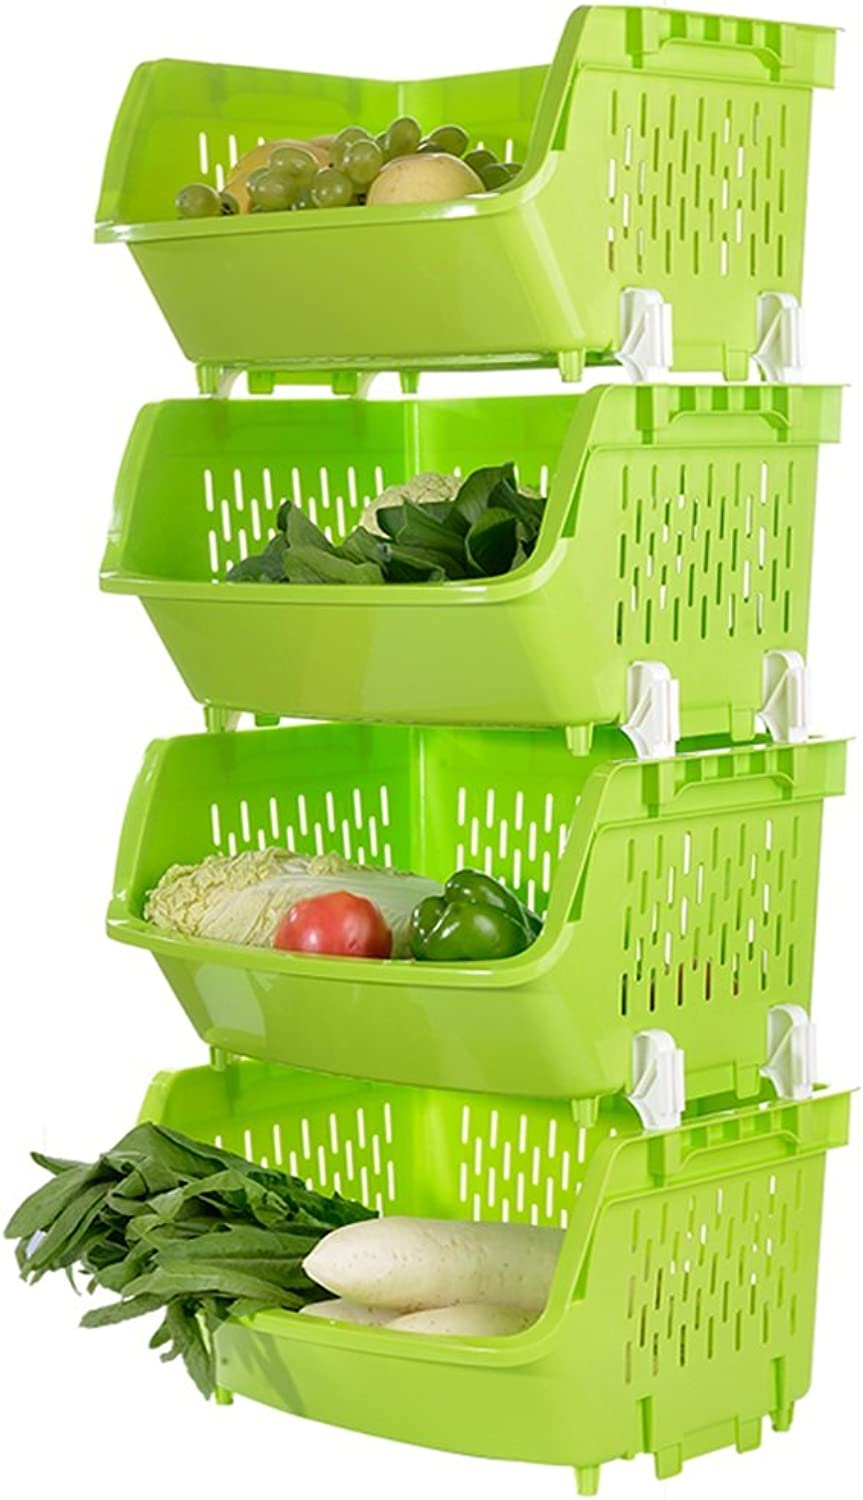 Shelf Kitchen Fruit and Vegetable Racks Floor Multi-Layer Storage Racks Bathroom Storage Baskets Kitchen Rack Mobile Vehicles (Four Layers) (color   Green, Size    a)